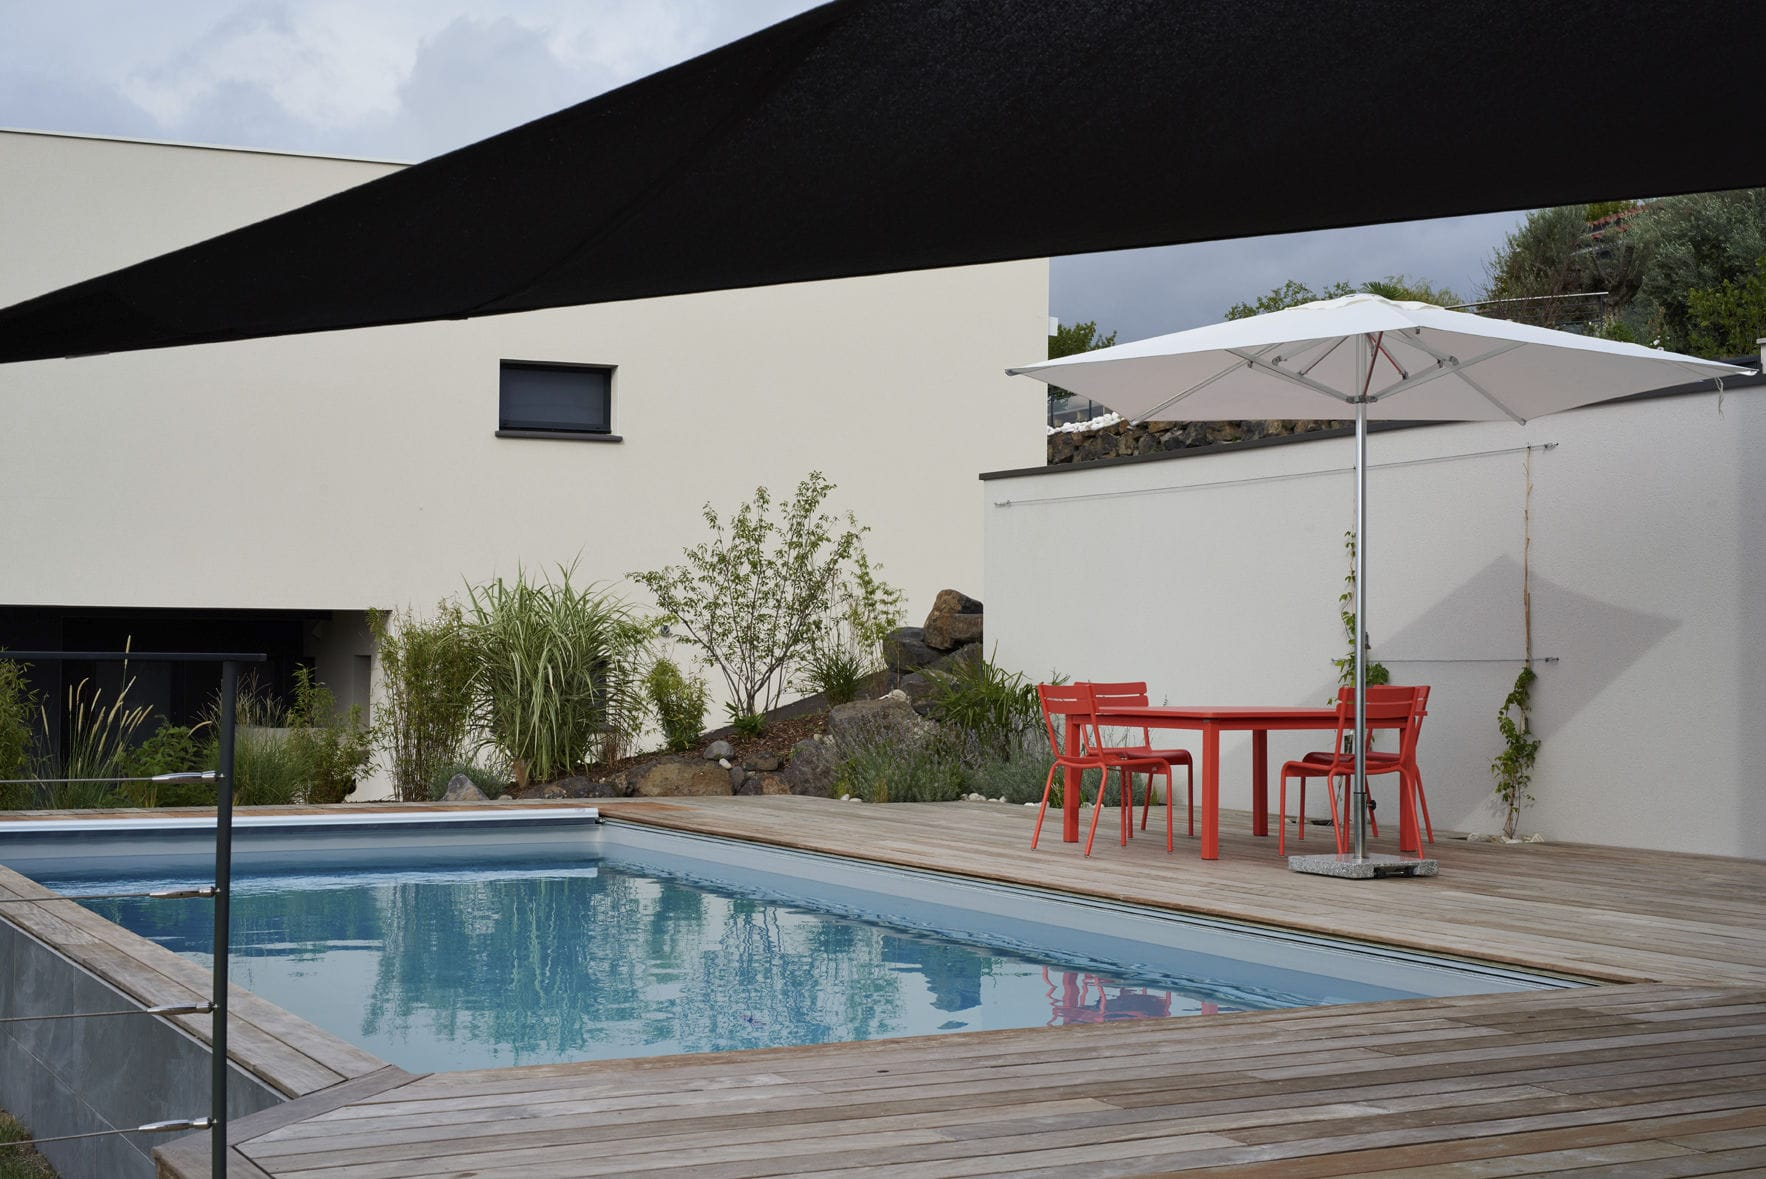 In-Ground Swimming Pool / Concrete / Outdoor - Jardins ... intérieur Villard De Lans Piscine